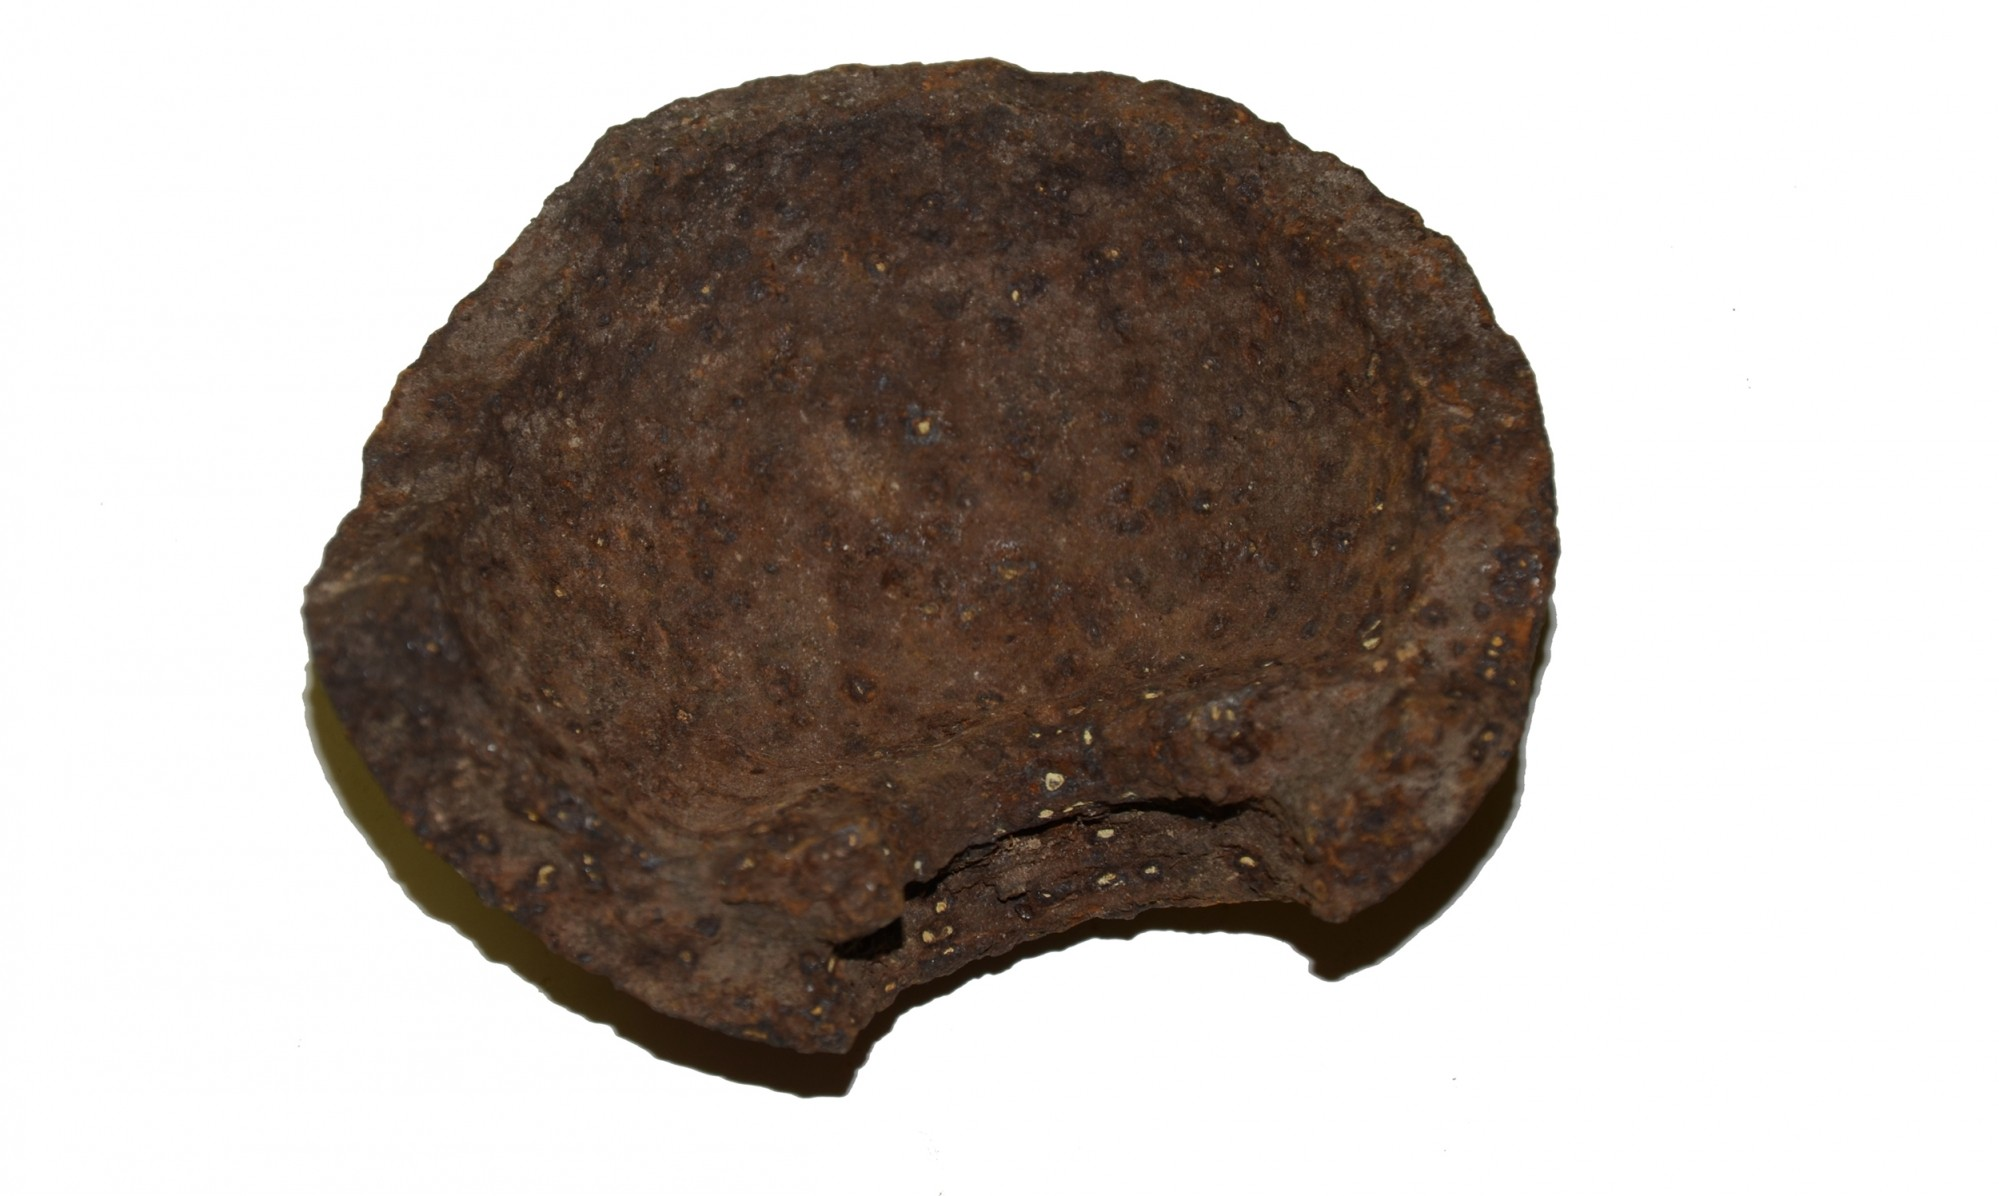 "US 4.52"" 12 LB. SPHERICAL SHELL FRAGMENT RECOVERED AT THE ROSE FARM, GETTYSBURG"